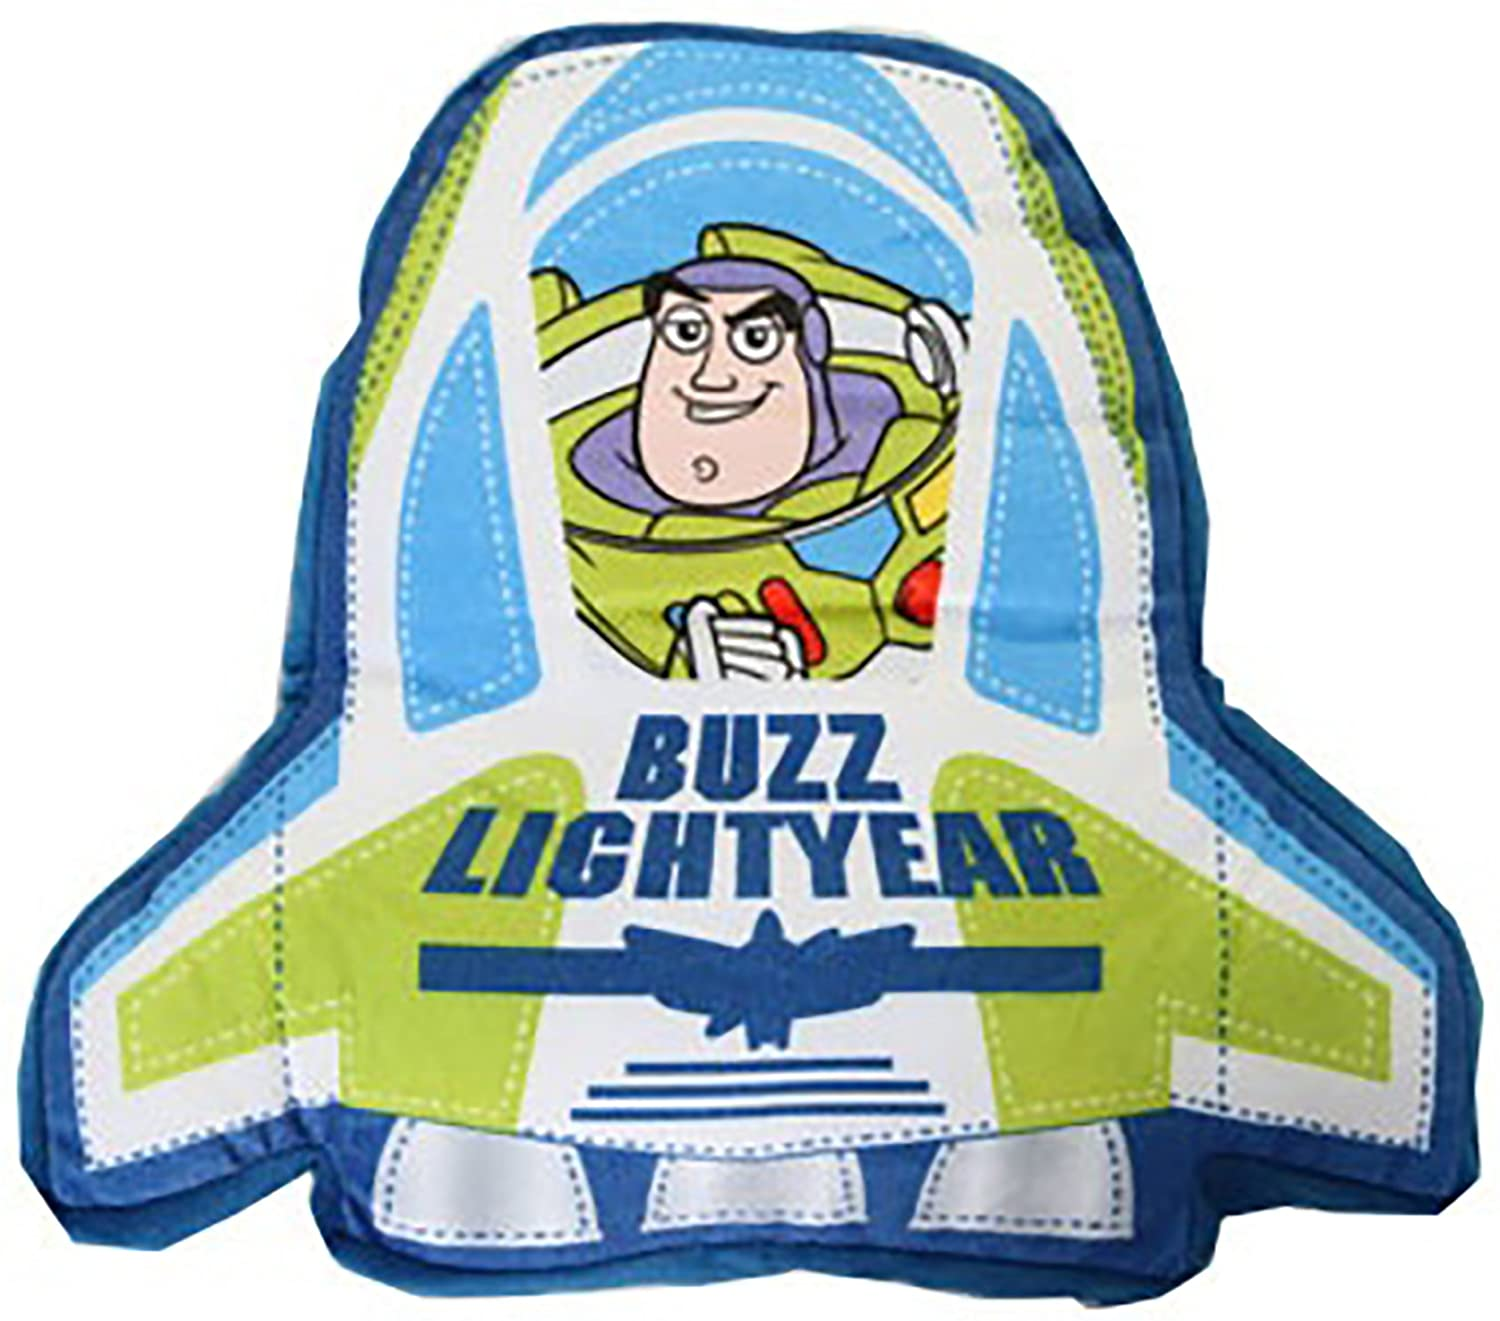 Disney Pixar - Buzz Lightyear Fleece Throw 180 x 130cm